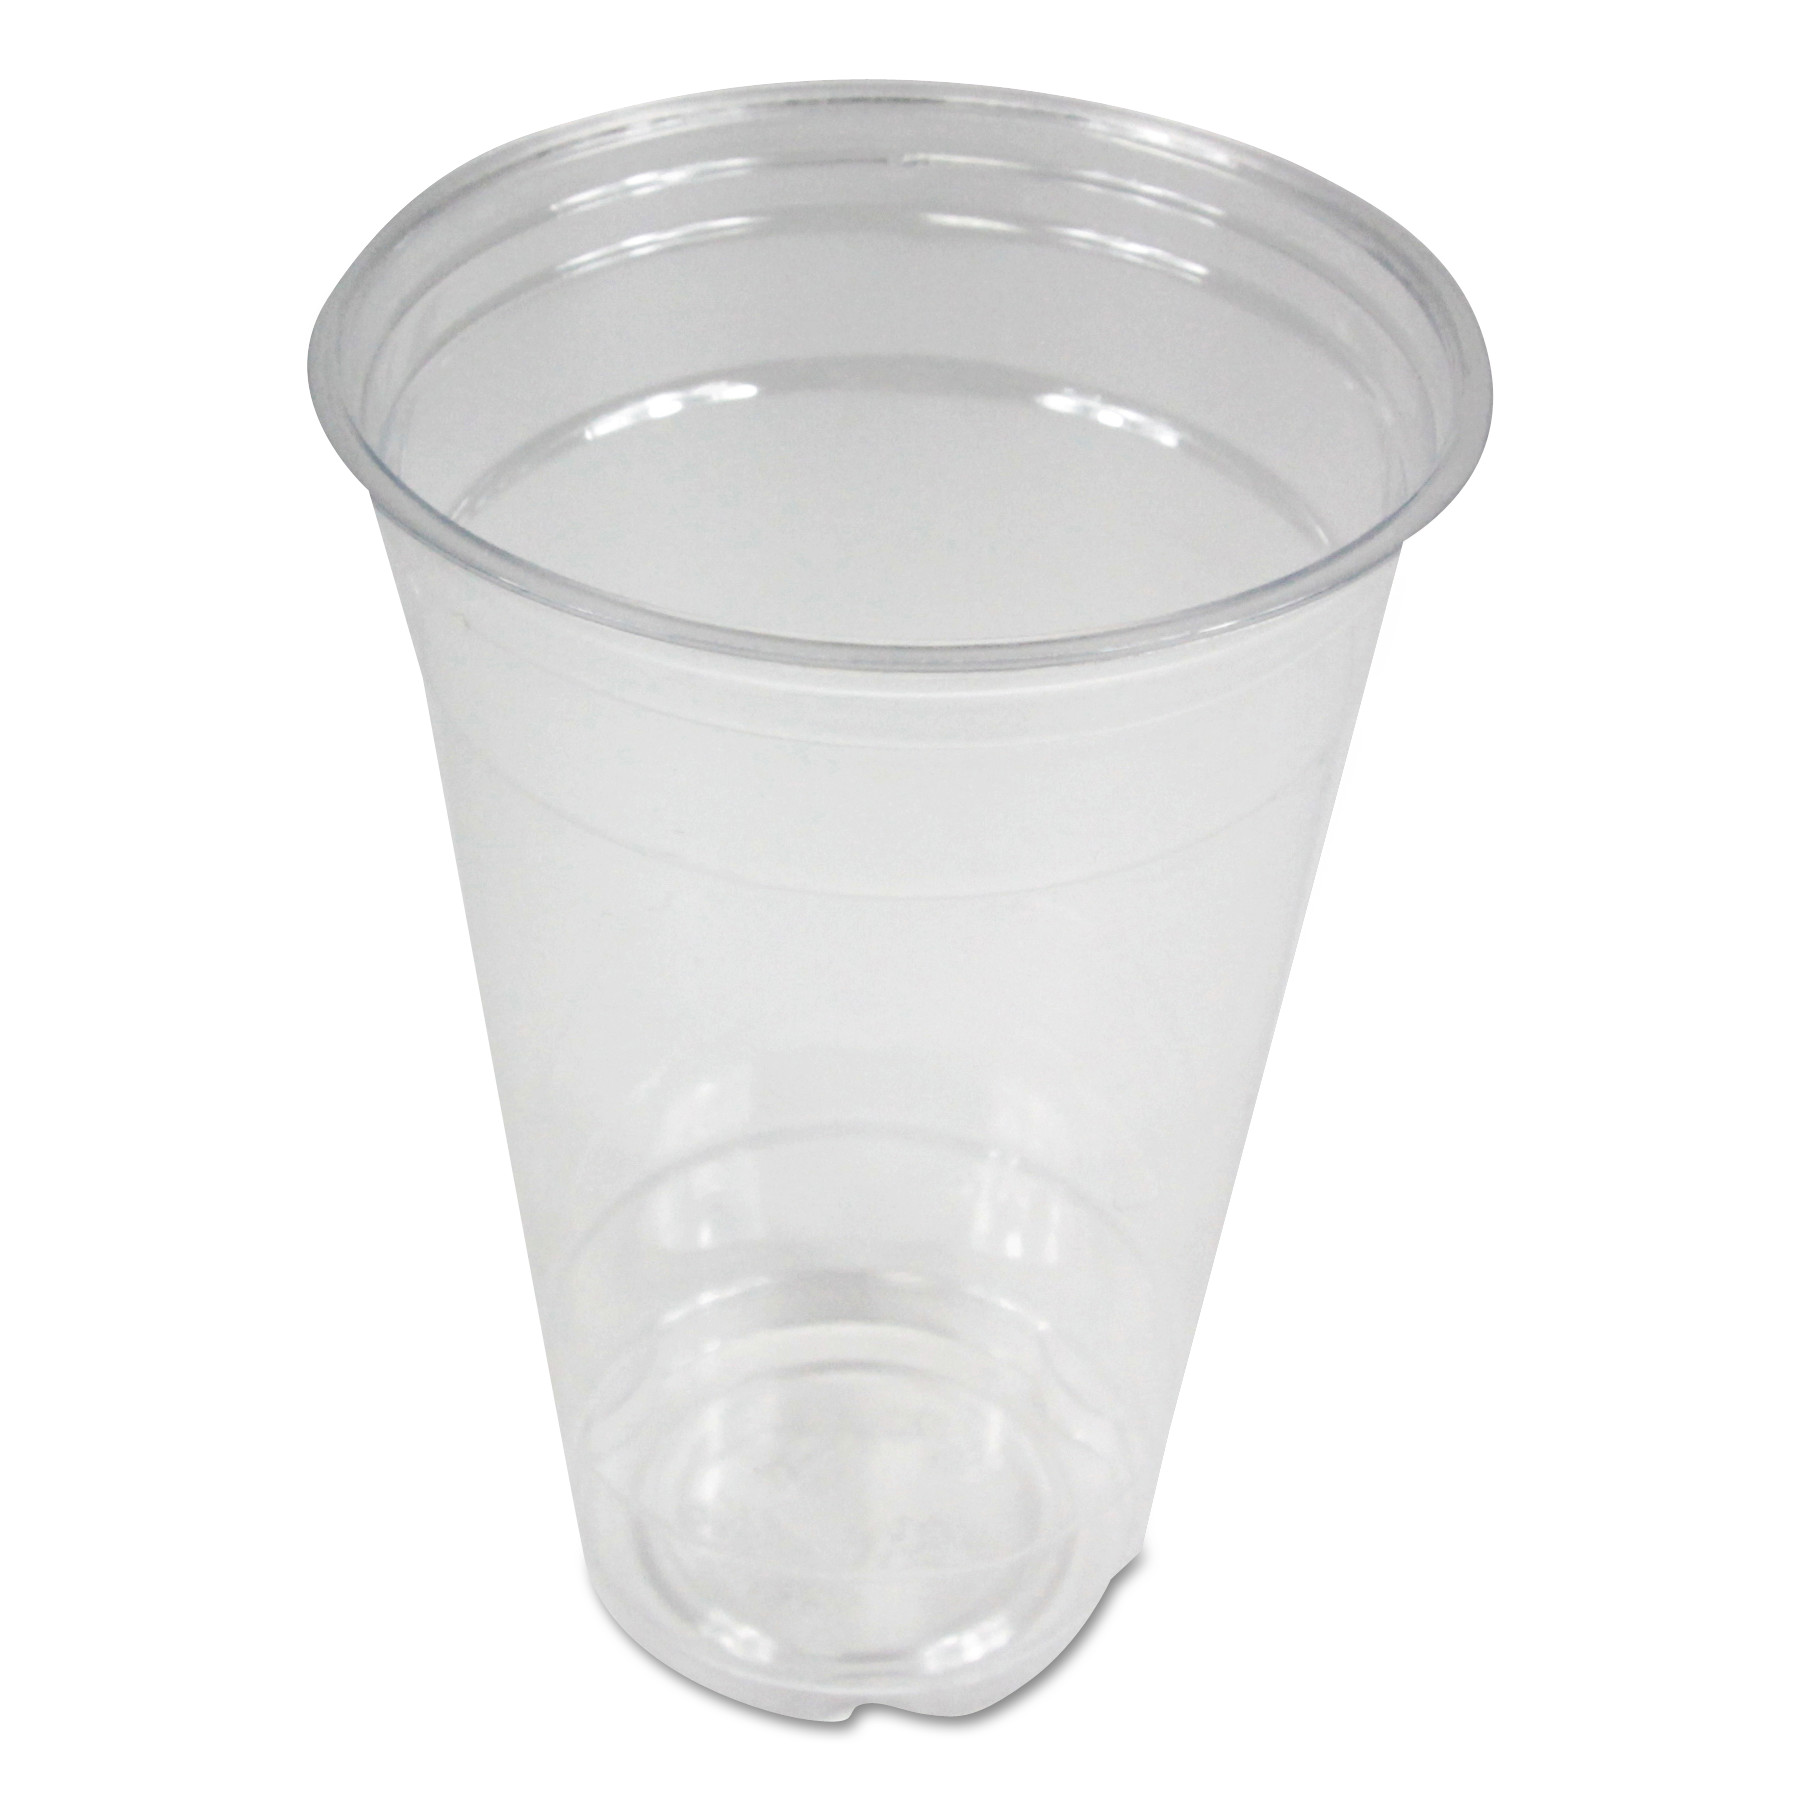 Clear Plastic Cold Cups, 20 oz, PET, 20 Cups/Sleeve, 50 Sleeves/Carton